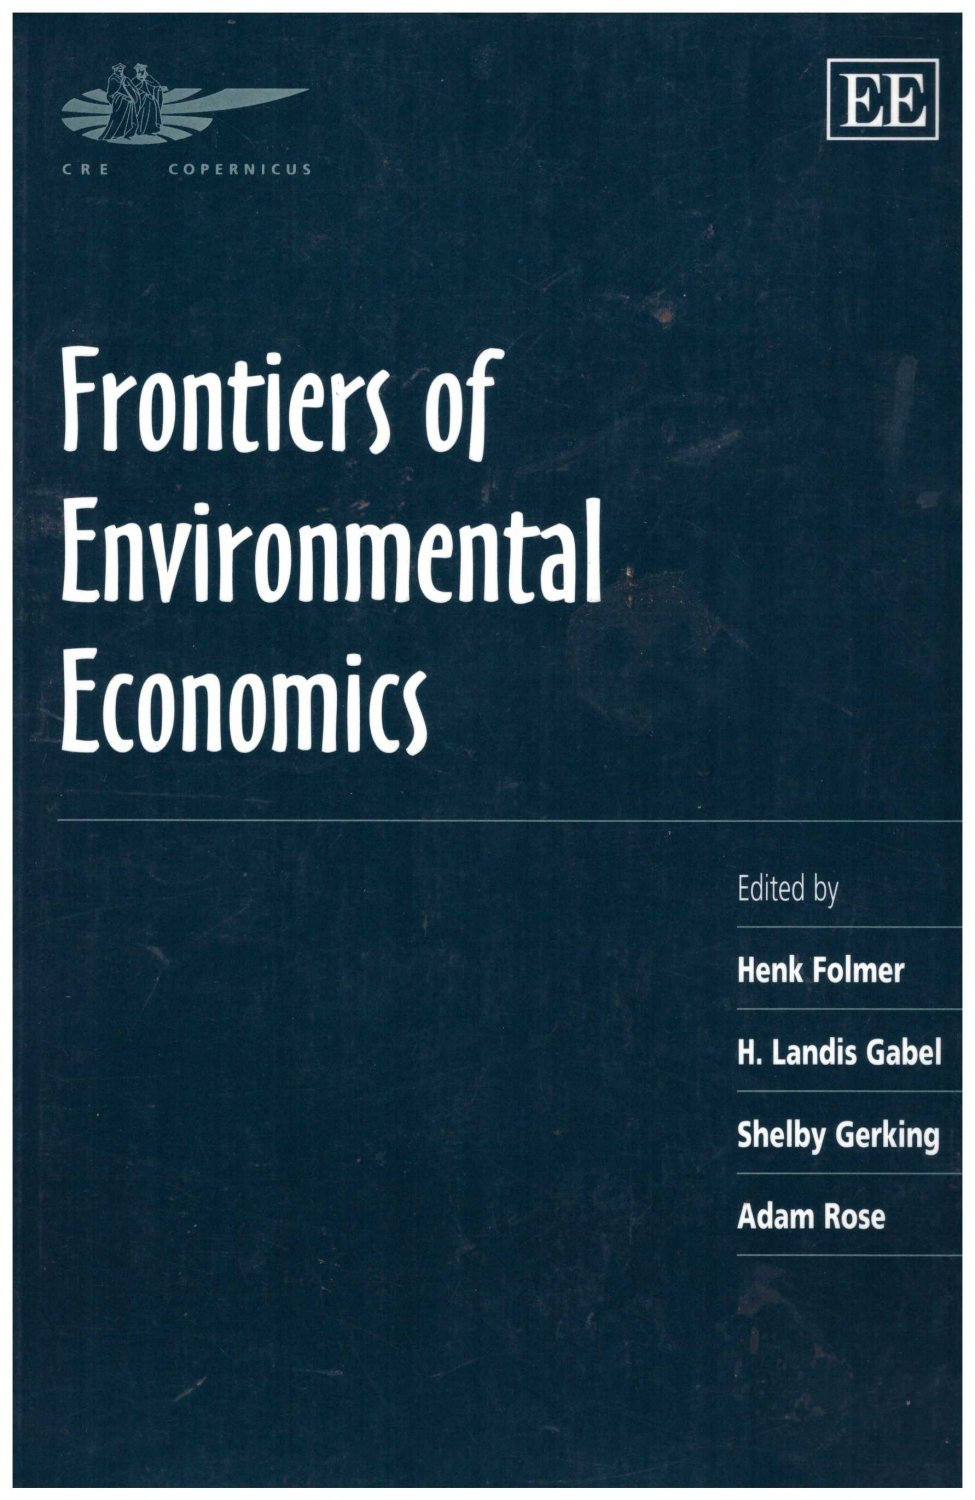 Frontiers of Environmental Economics edited by Henk Folmer